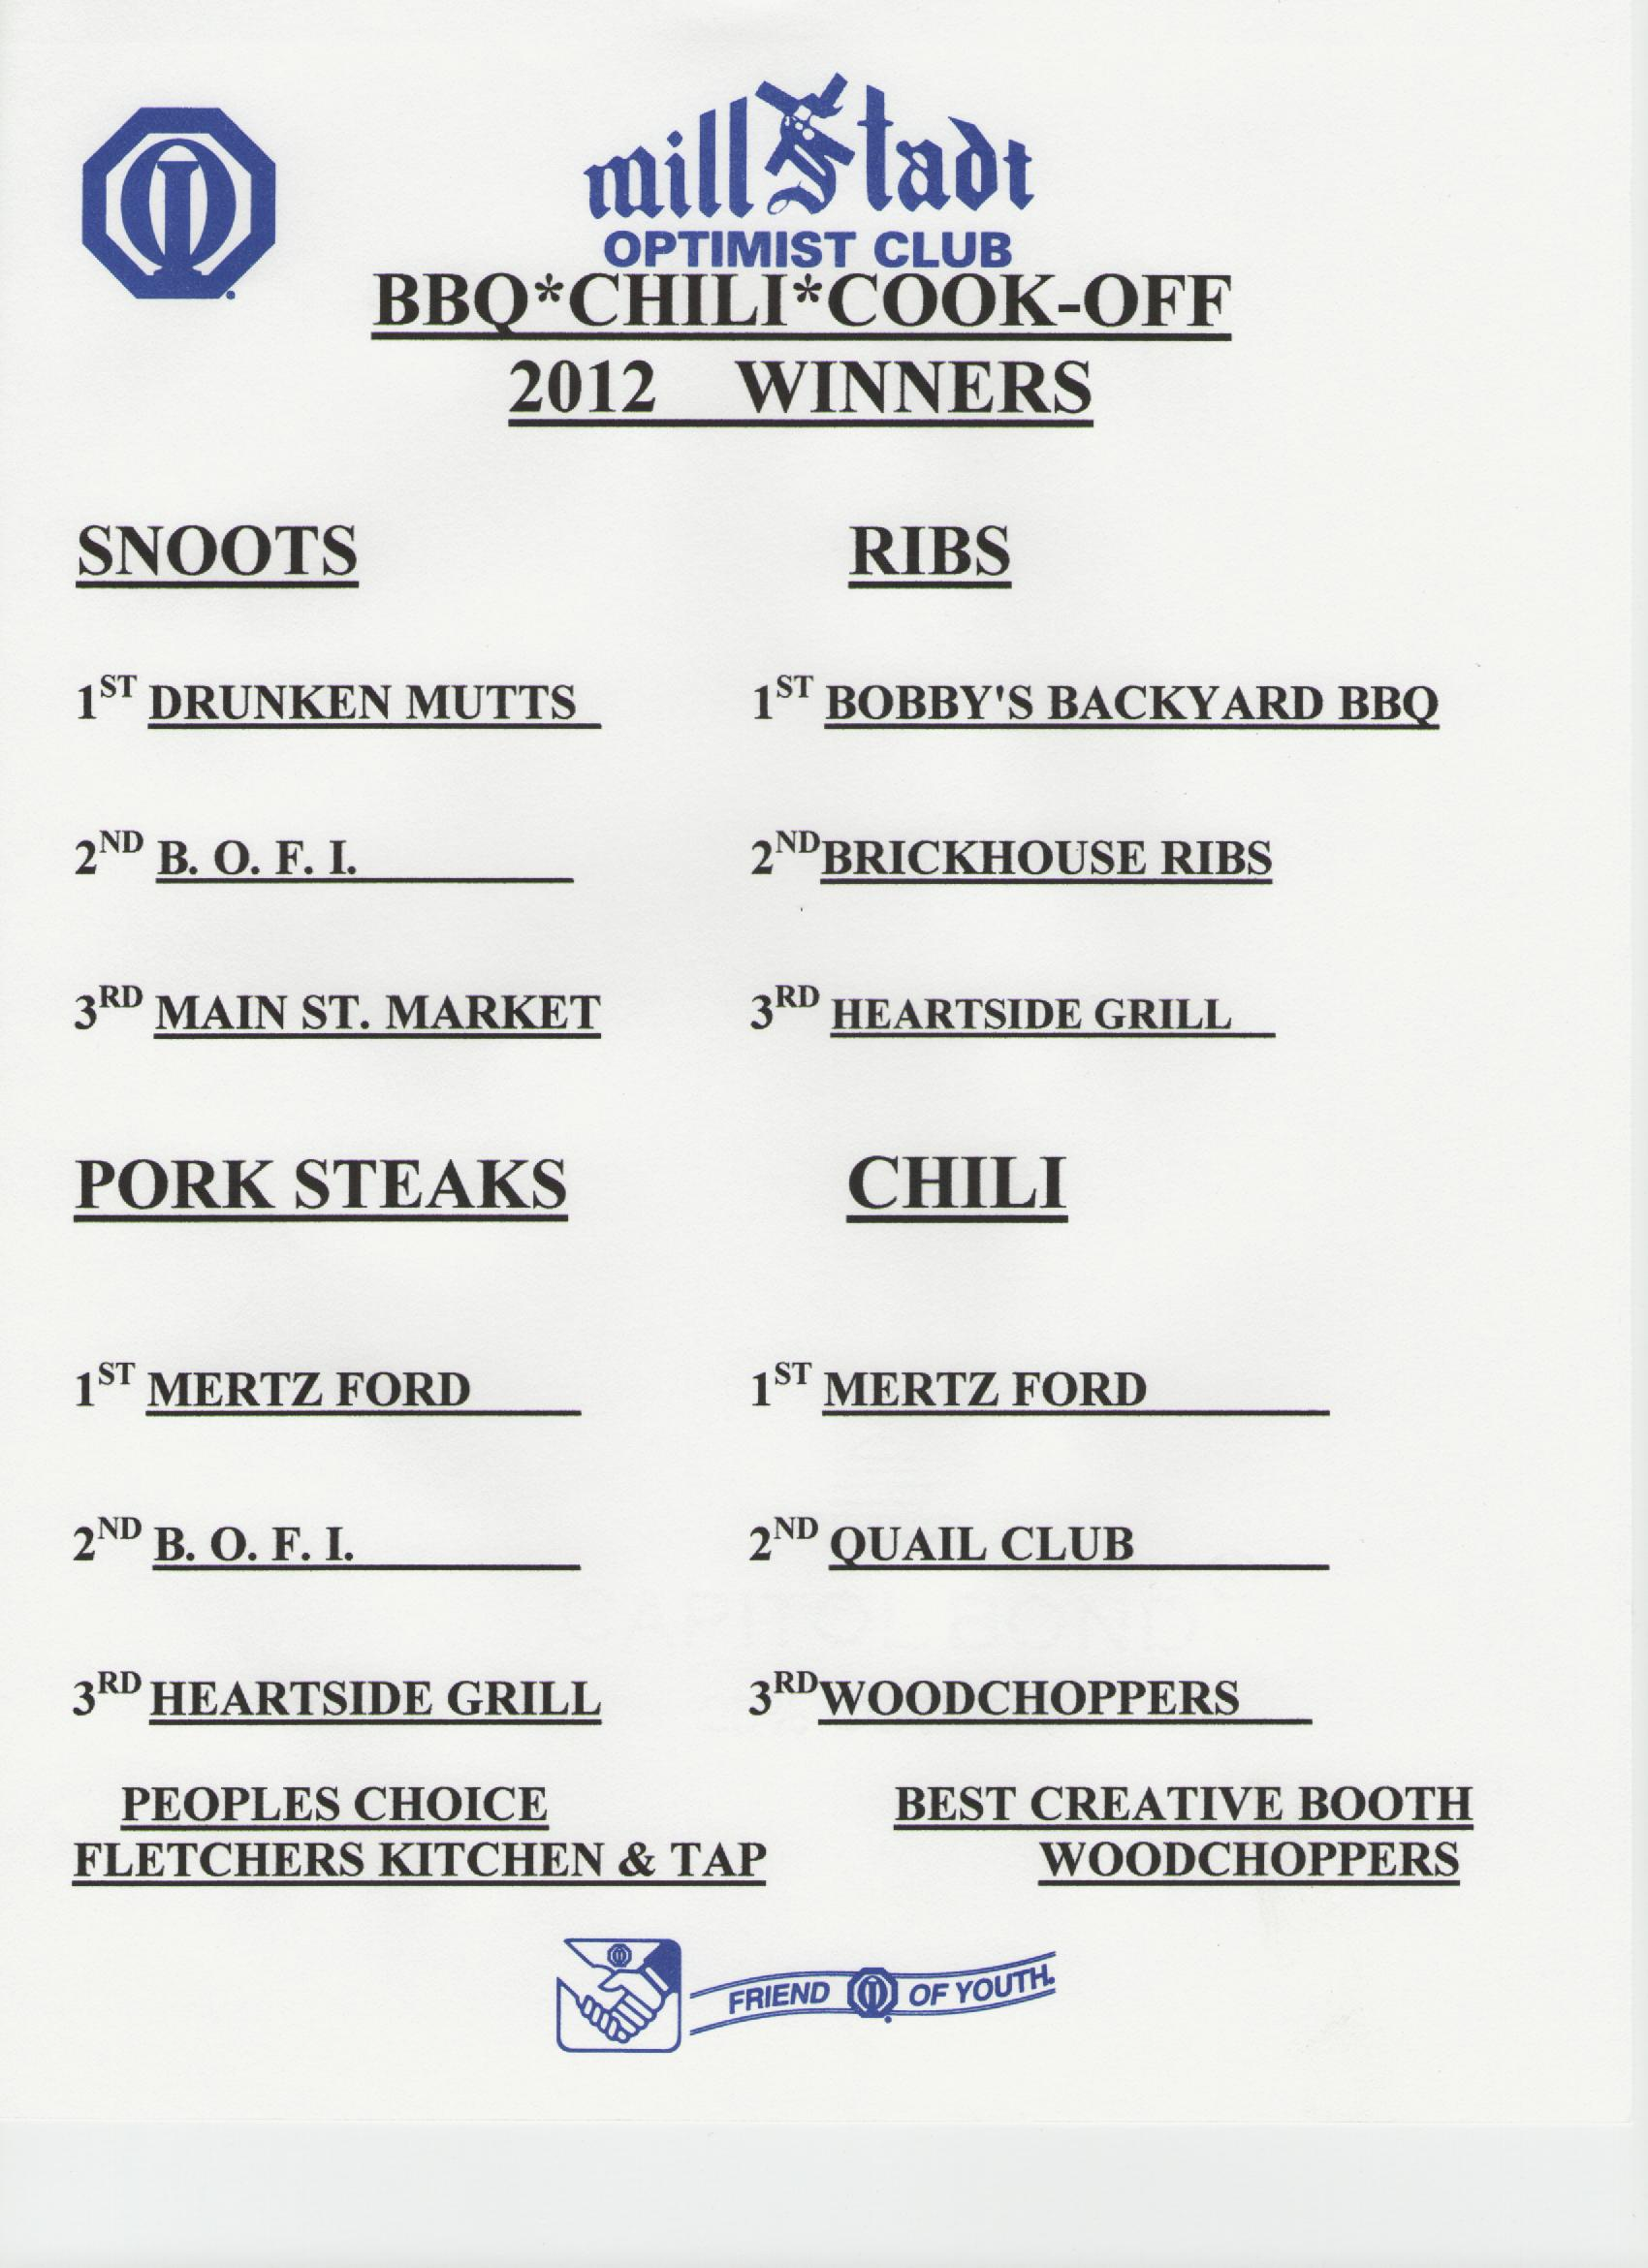 2012 Cook-Off Winners